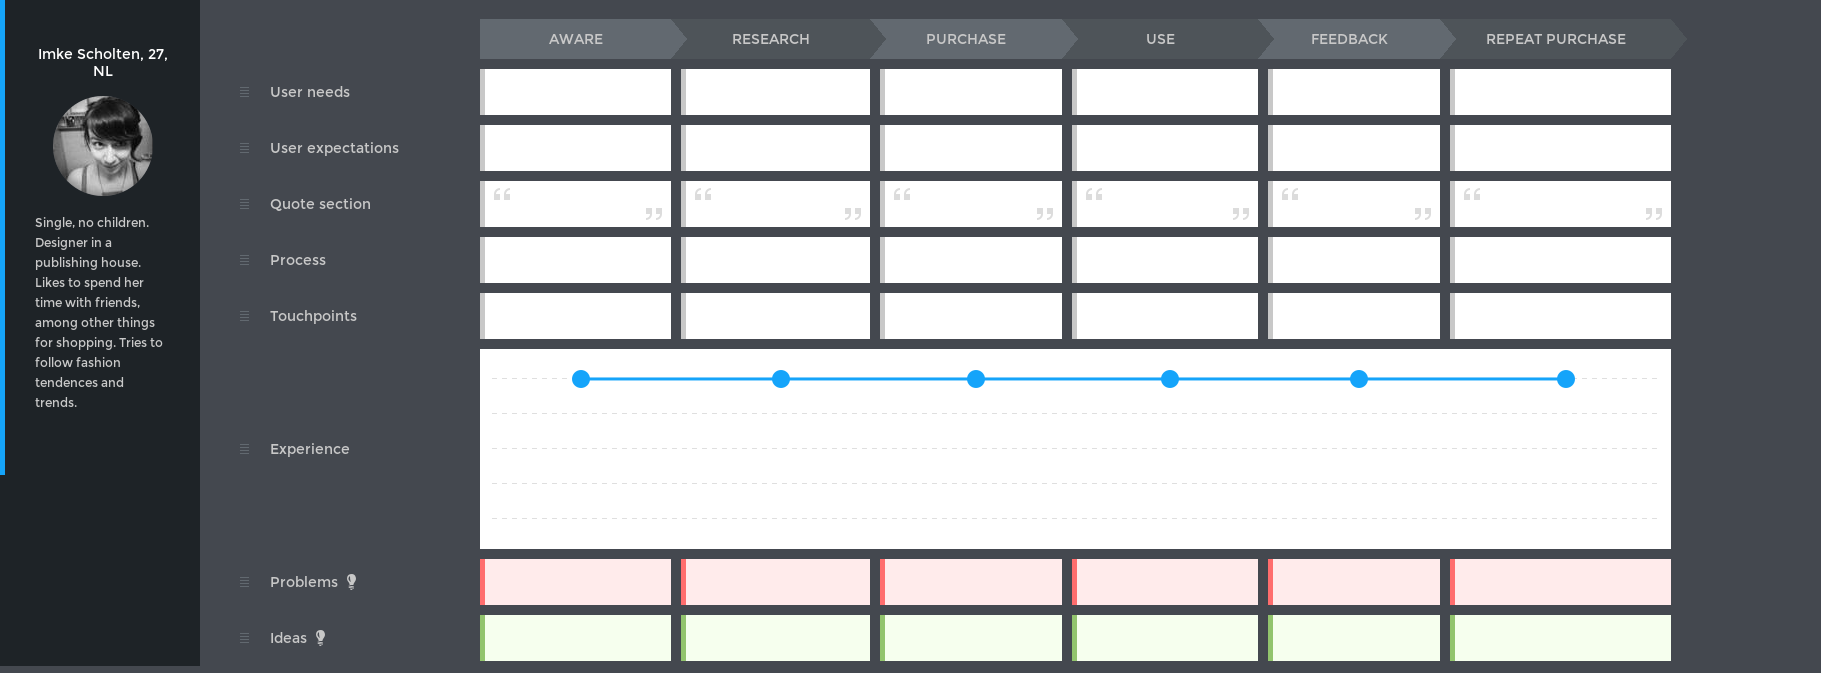 Customer Journey Mapping Template For Manufacturing Customer - Customer journey mapping template